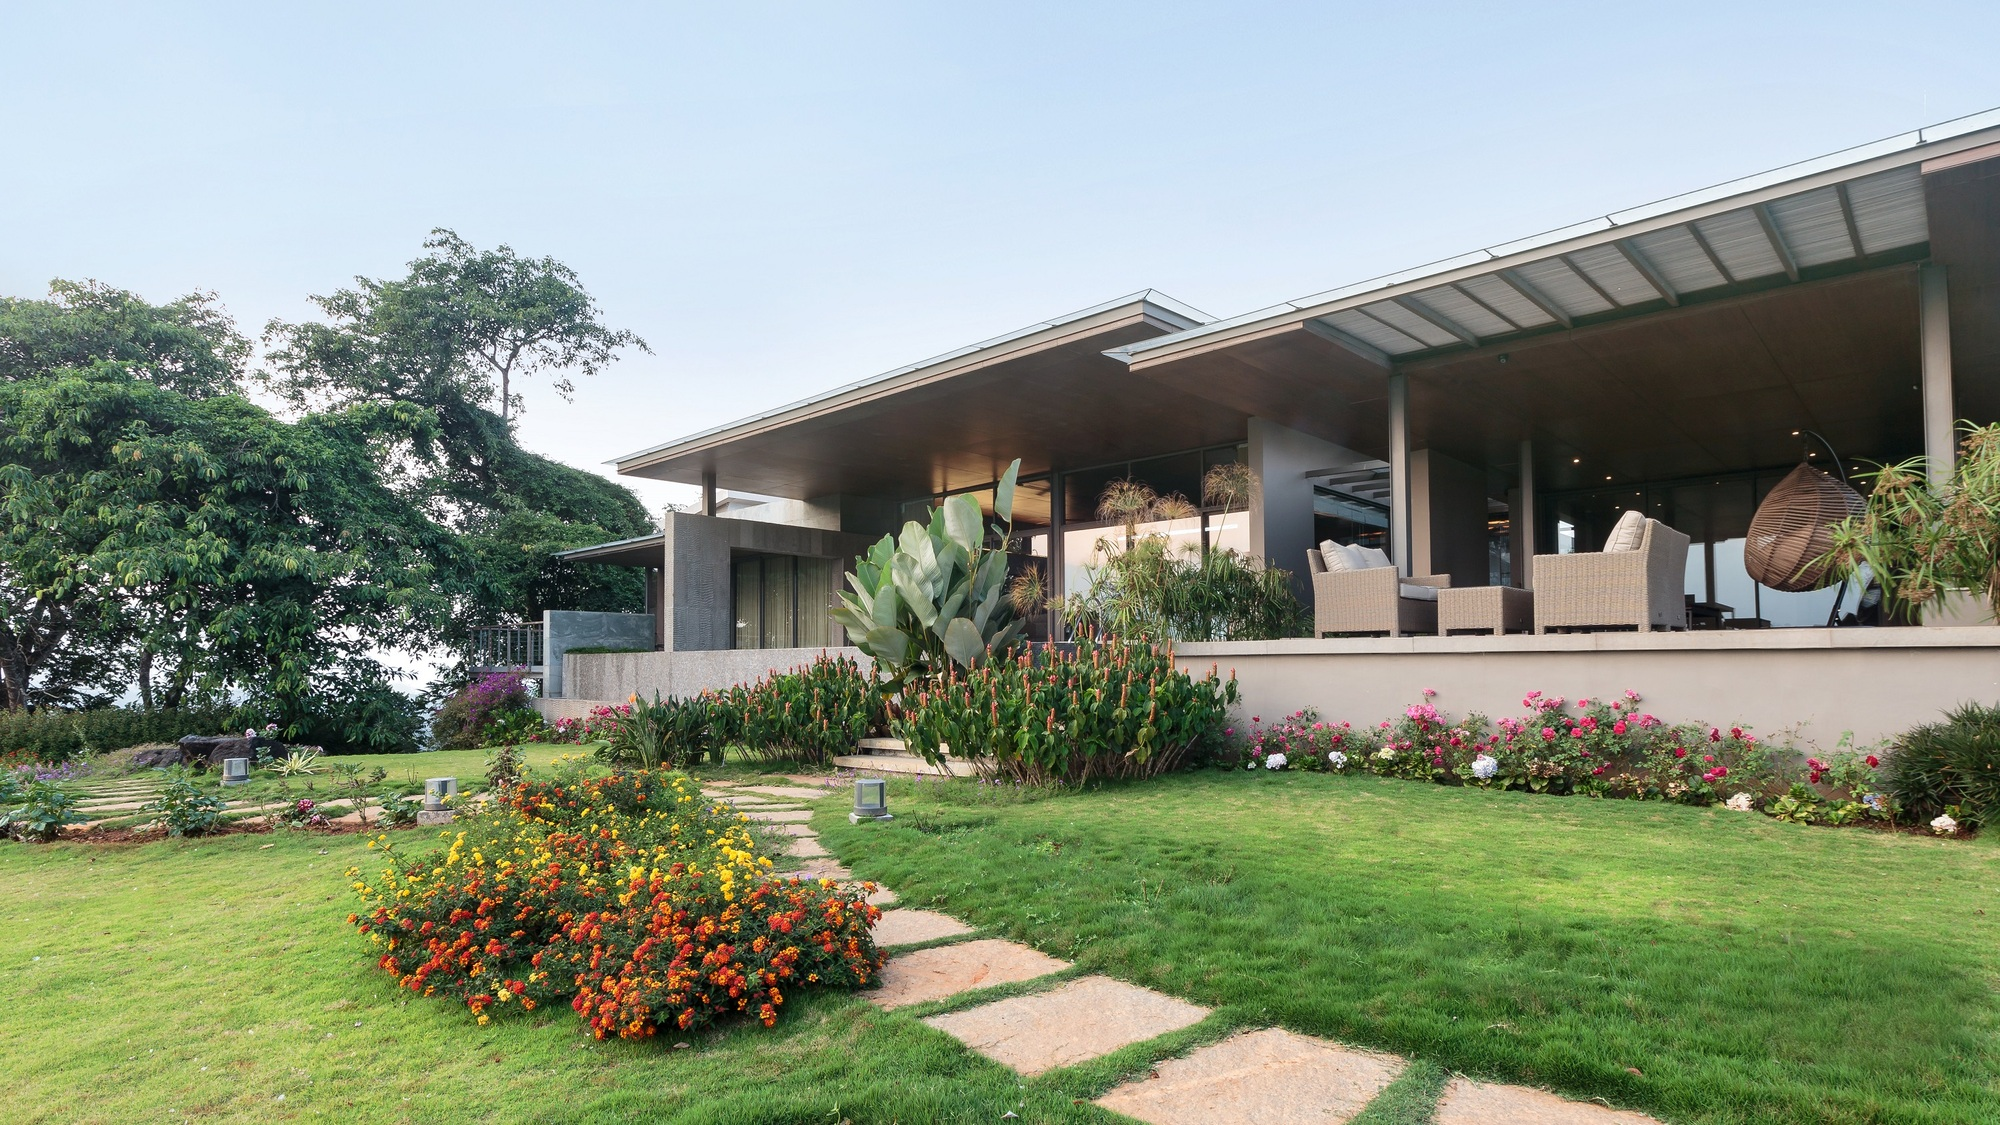 Home on the Hill / Arun Nalapat Architects